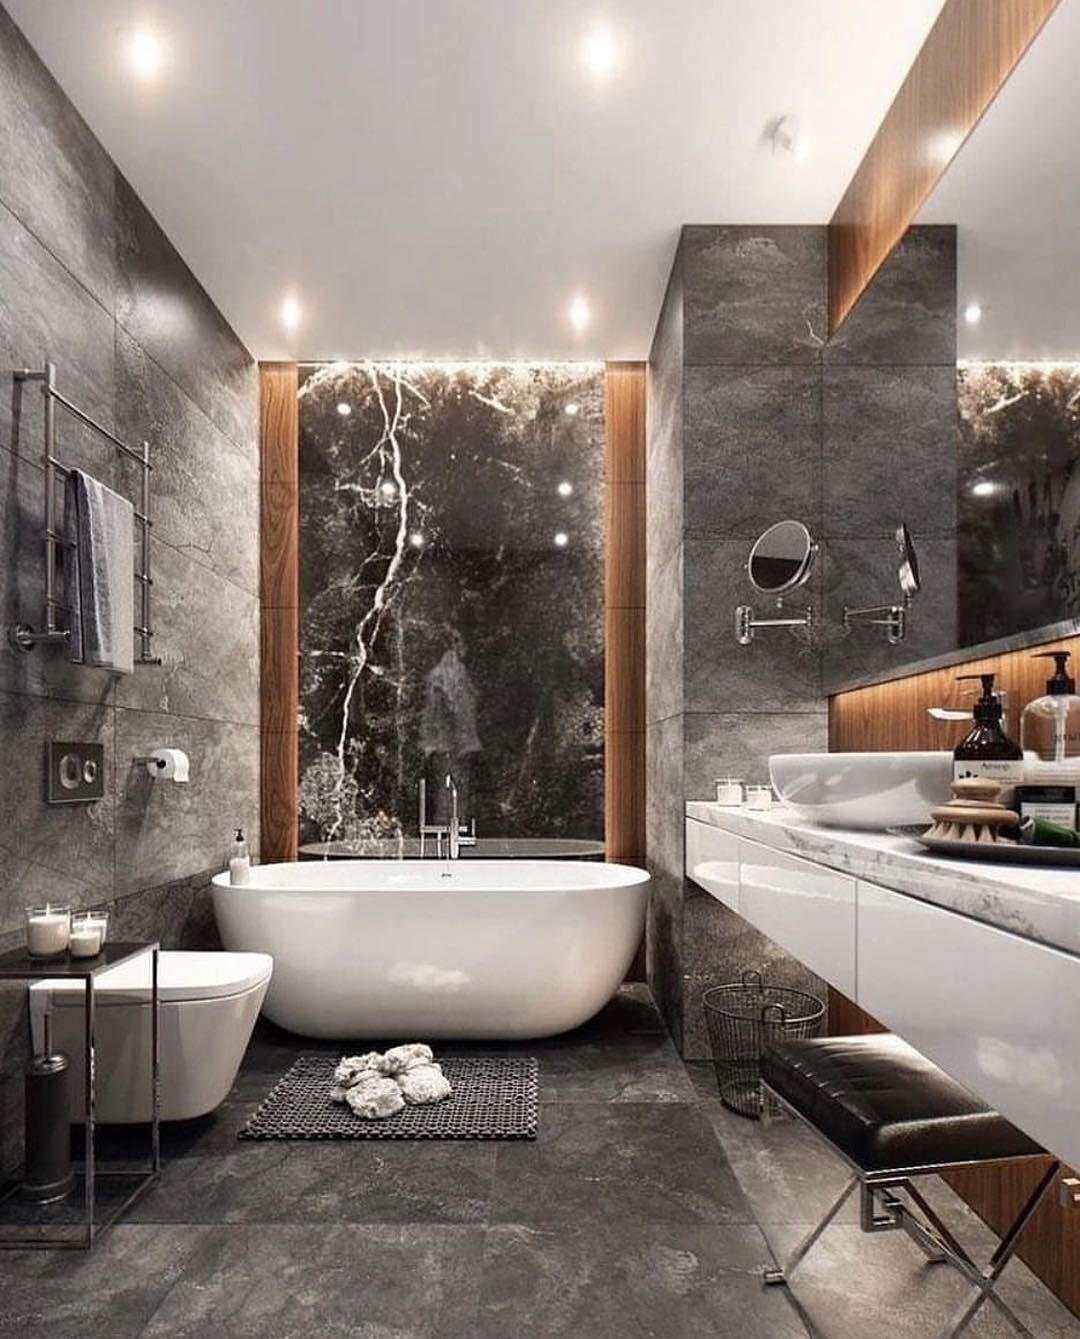 30+ OF THE MOST BEAUTIFUL BATHROOM DESIGNS 2019 - Page 10 ...